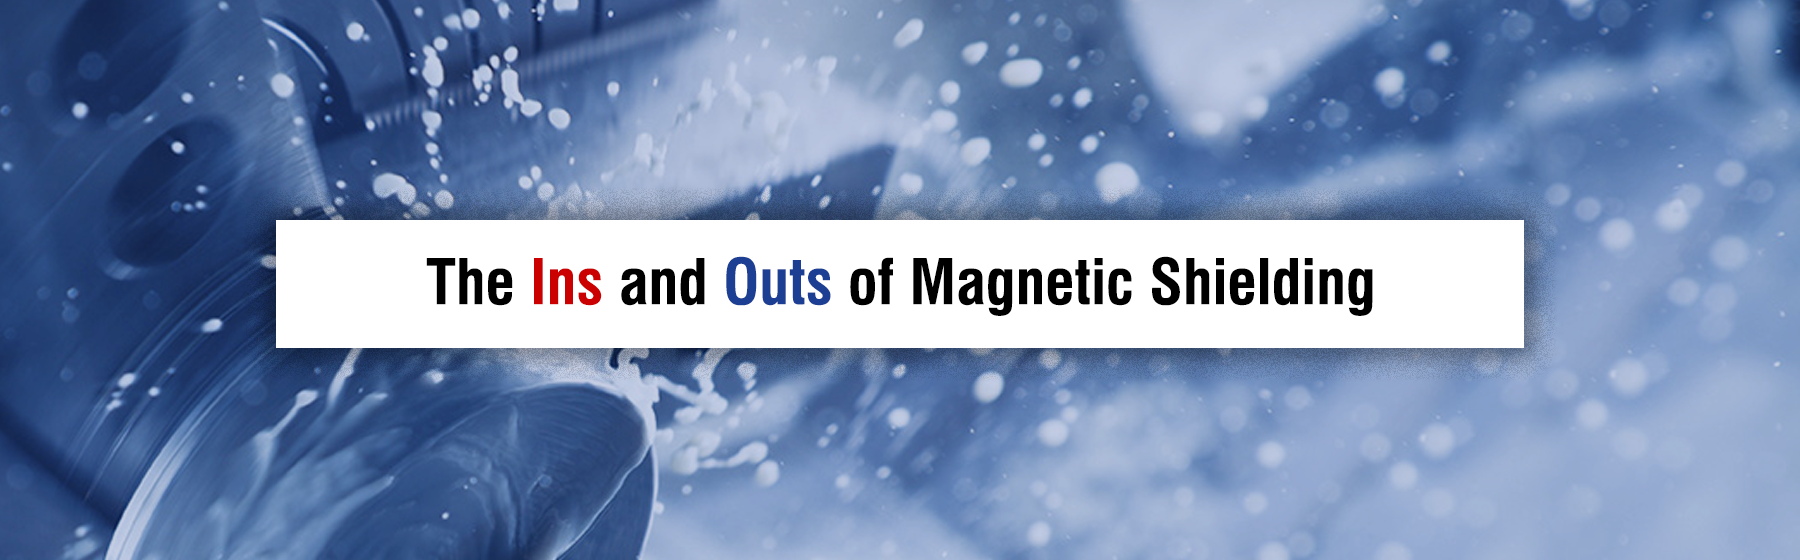 Ins and Out of Magnetic Shielding